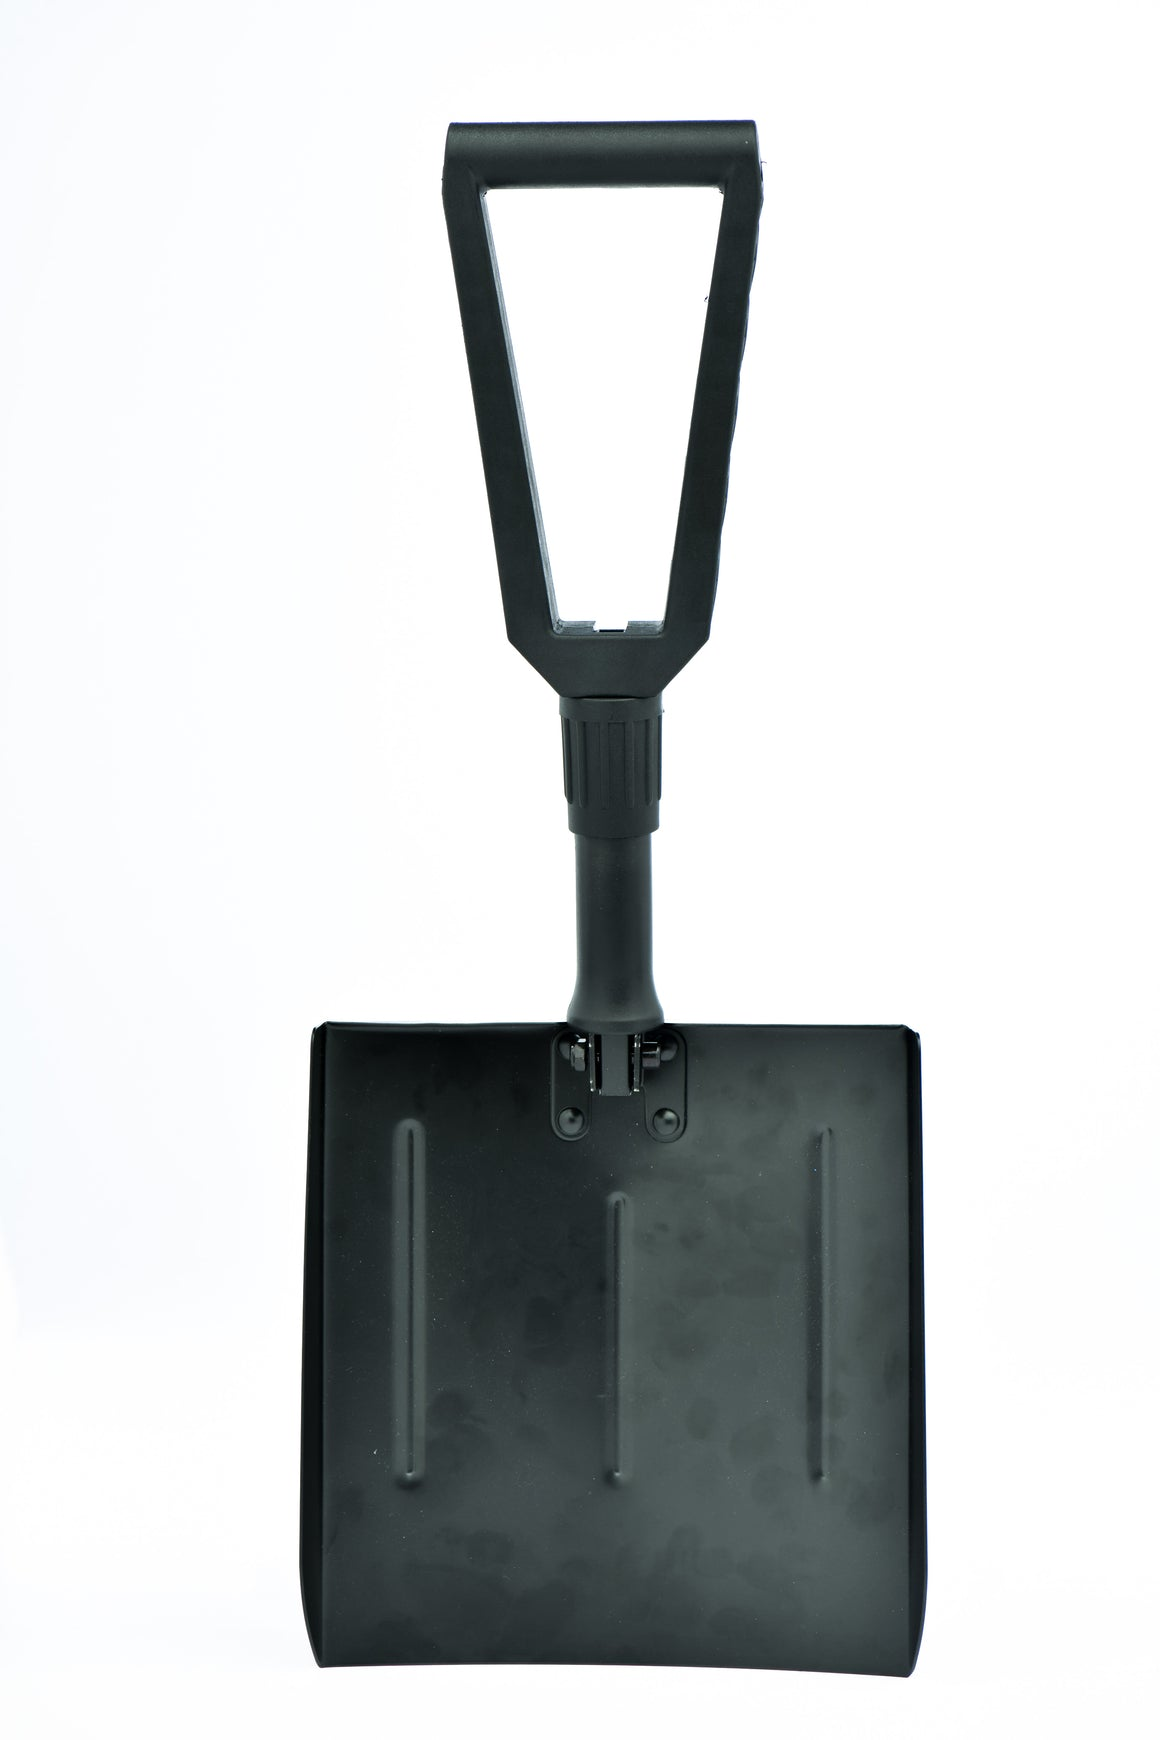 TABOR TOOLS Collapsible Outdoor Spade, Folding Snow Shovel, J3A.